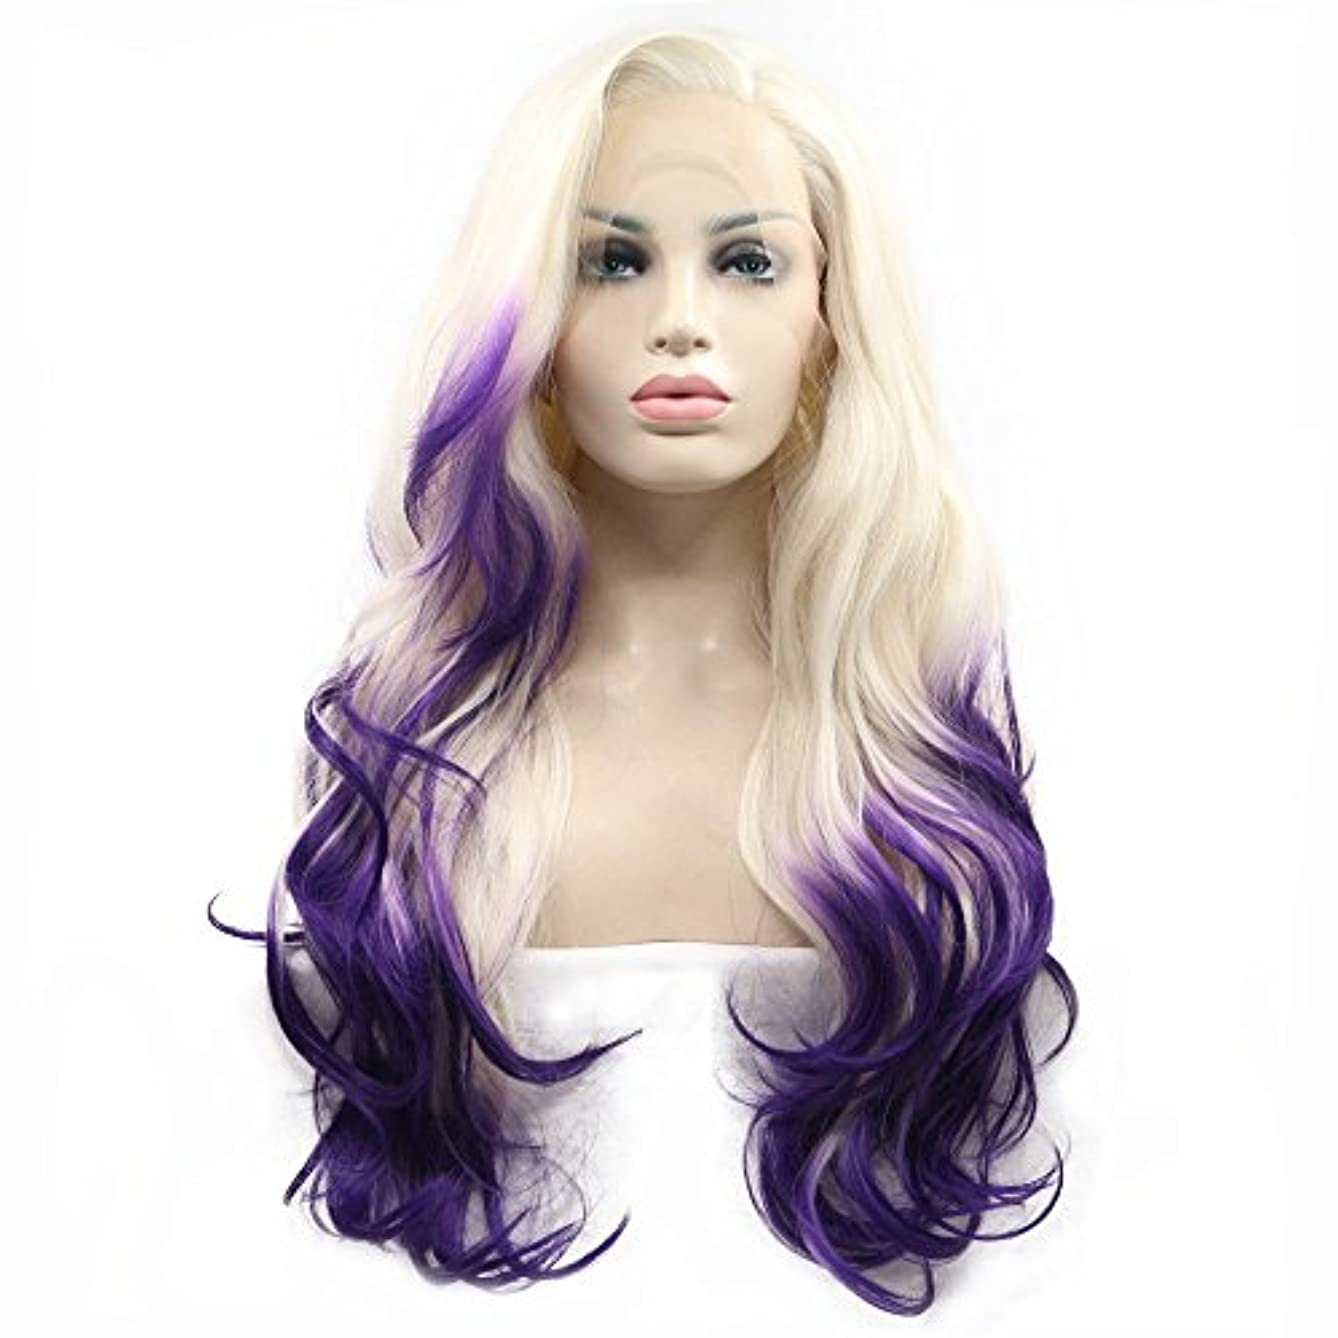 Heat Resistant Natural Wave Long Synthetic Hair White Blonde Ombre Purple Two Tone Handmade Lace Front Wigs for Drag Queen Women Ladies Girls Replacement Cosplay Party Wig Natural Hairline 24inches